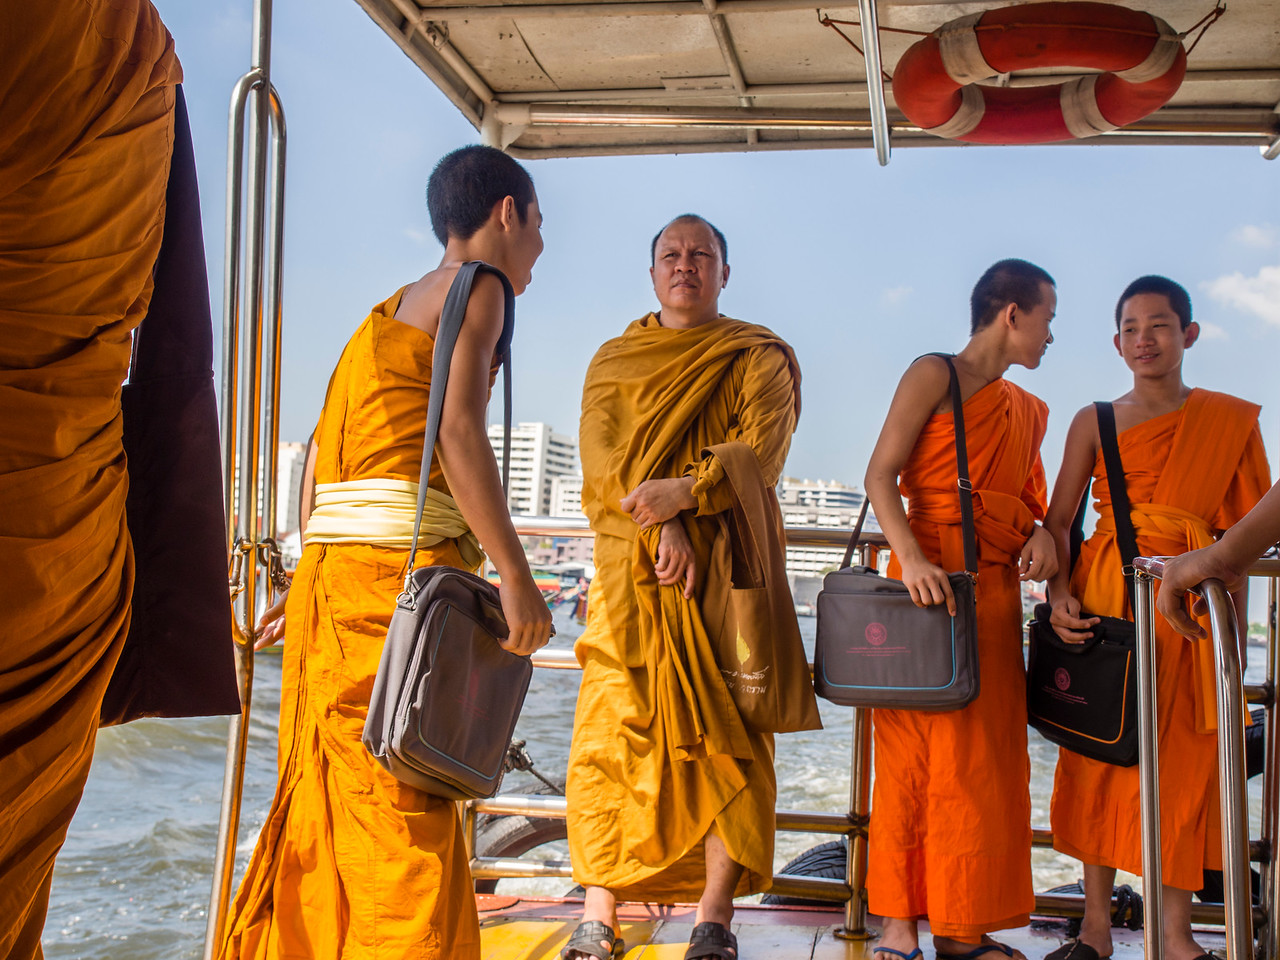 Monks on the Chao Phraya Express Boat, Bangkok, Thailand